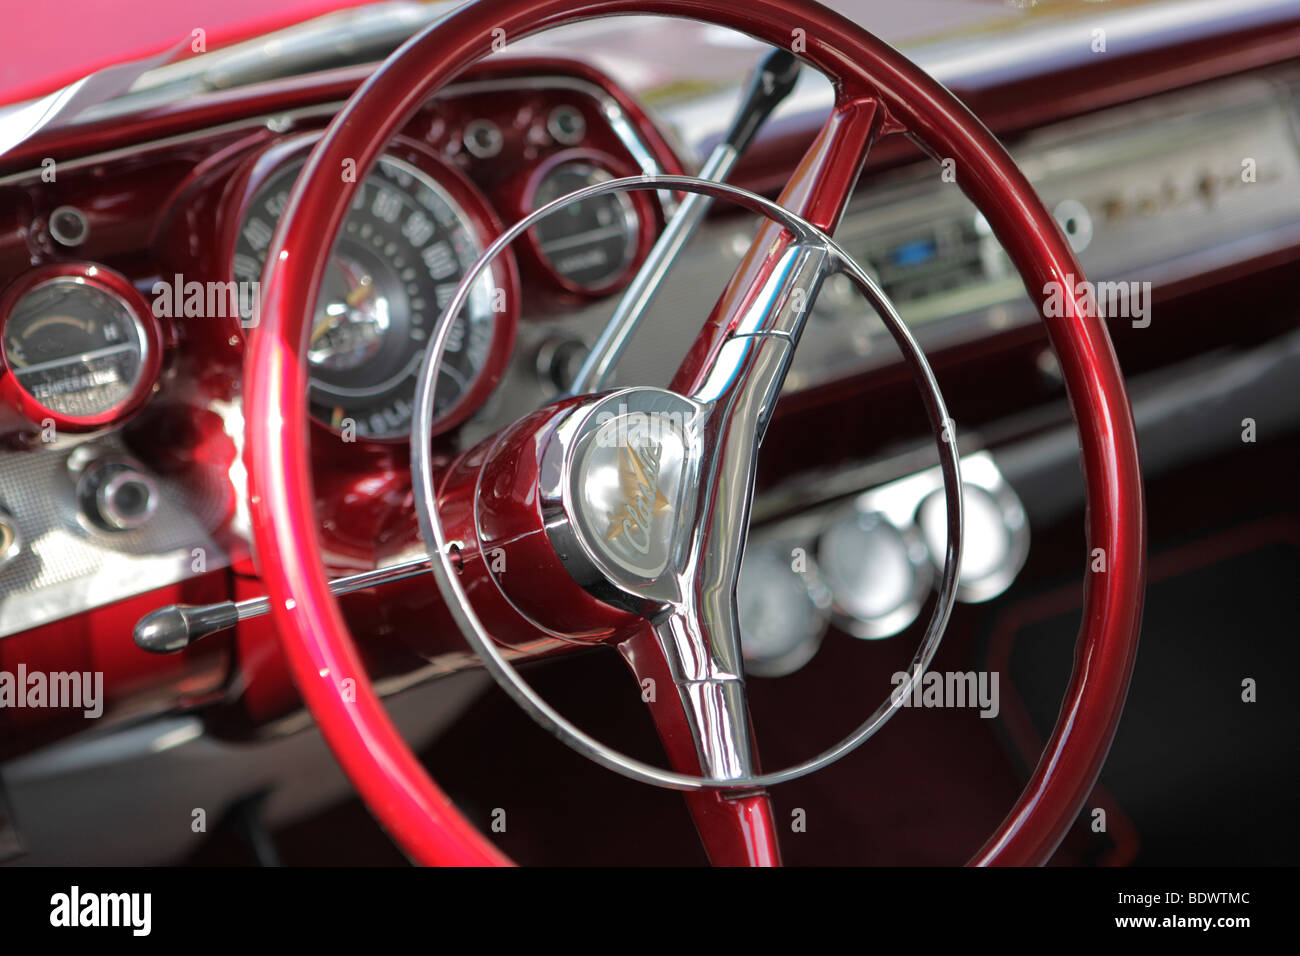 steering wheel chevy 1957 bel air smithville indiana alamy